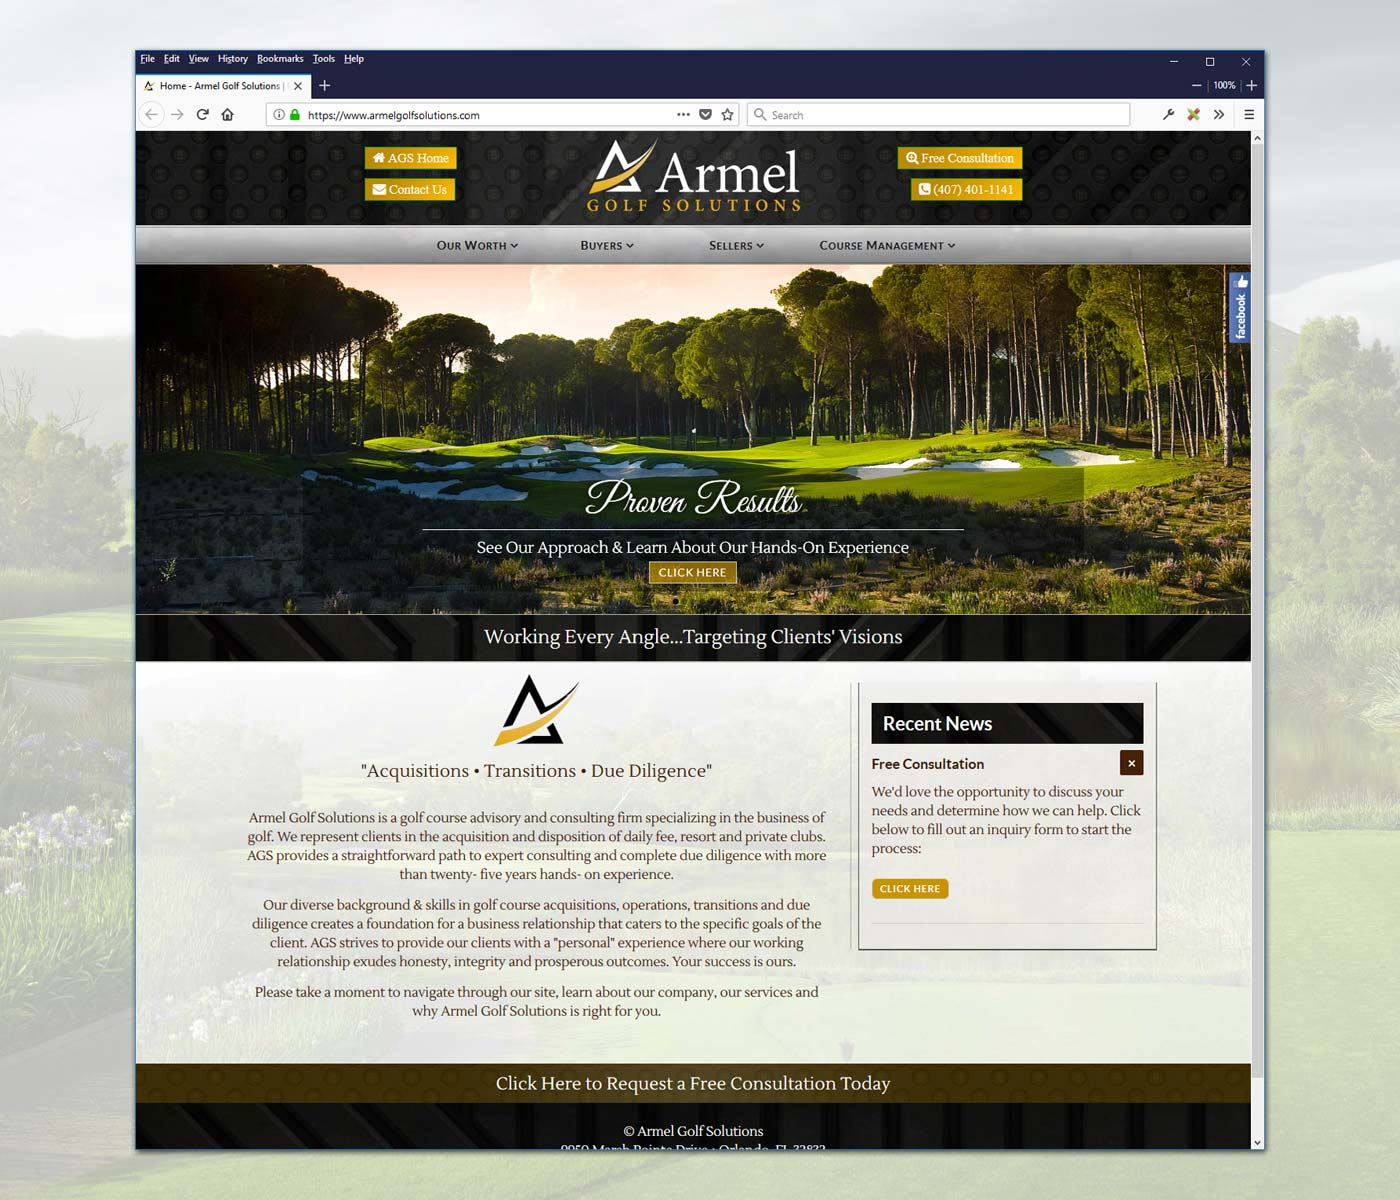 Armel Golf Solutions